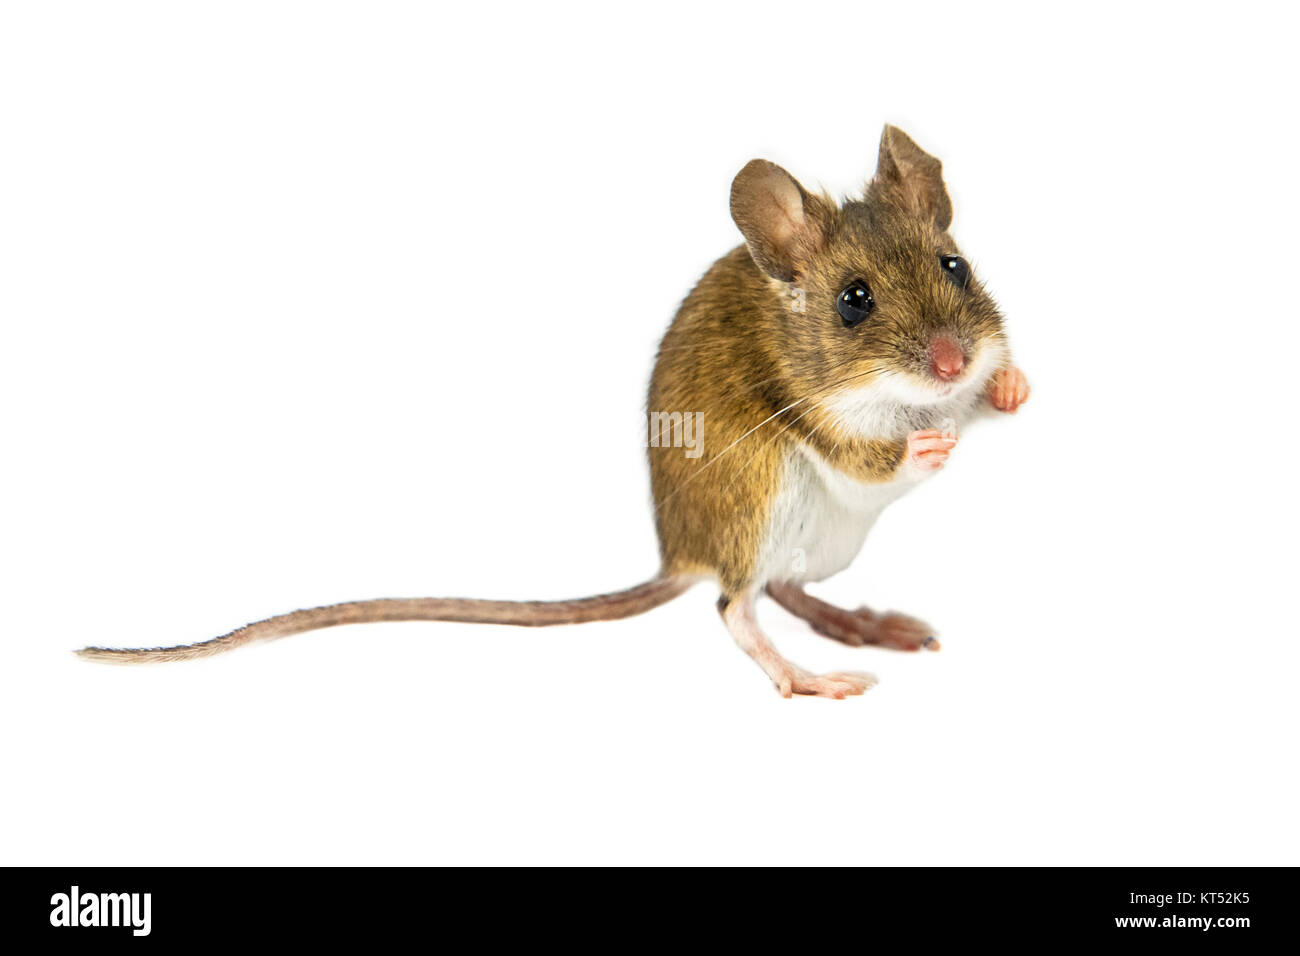 Wood mouse (Apodemus sylvaticus) with cute brown eyes standing and about to jump on white background - Stock Image